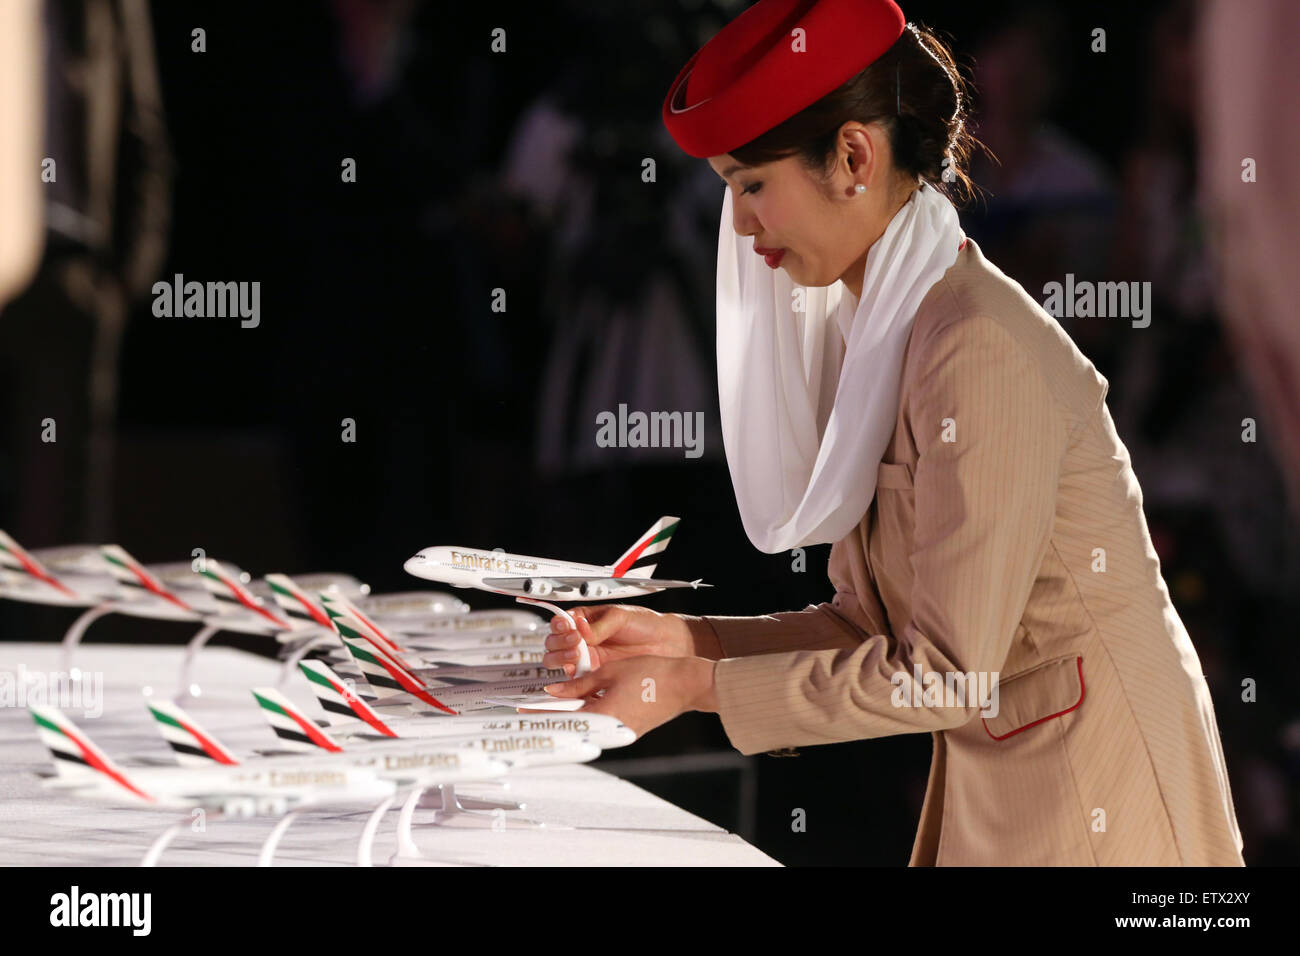 Dubai, United Arab Emirates, the Emirates Airline Stewardess - Stock Image